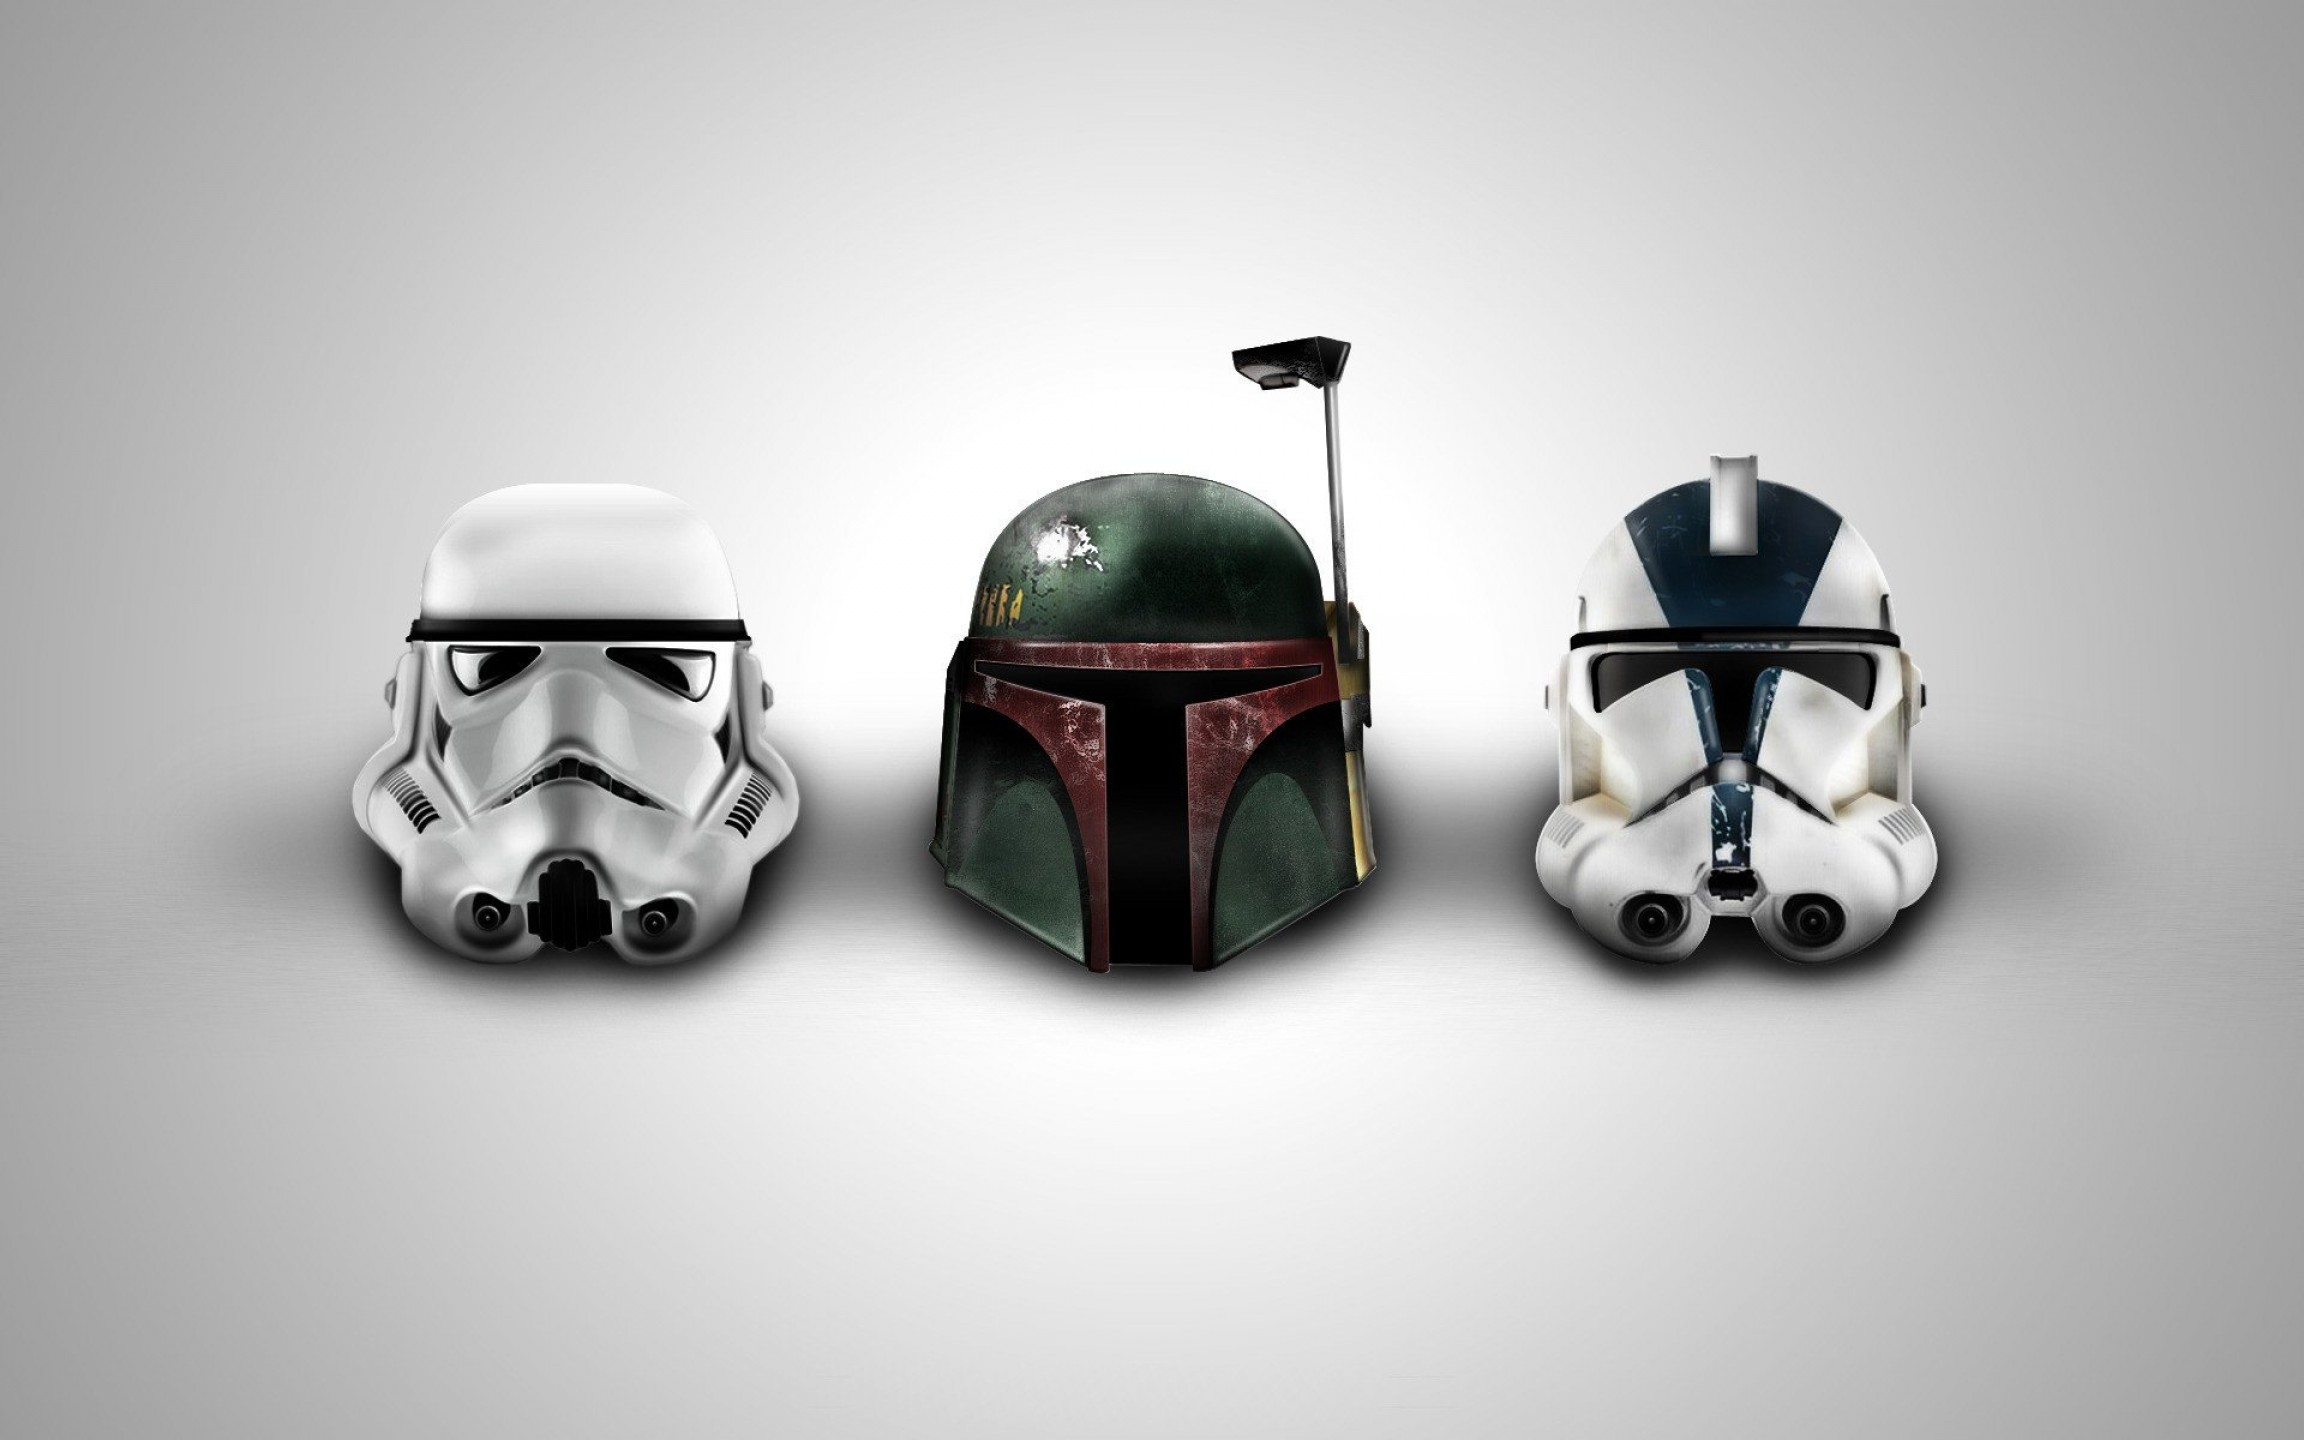 Boba Fett Vector Black And White: Boba Fett Clone Mos Eisley Star Wars War Wallpaper